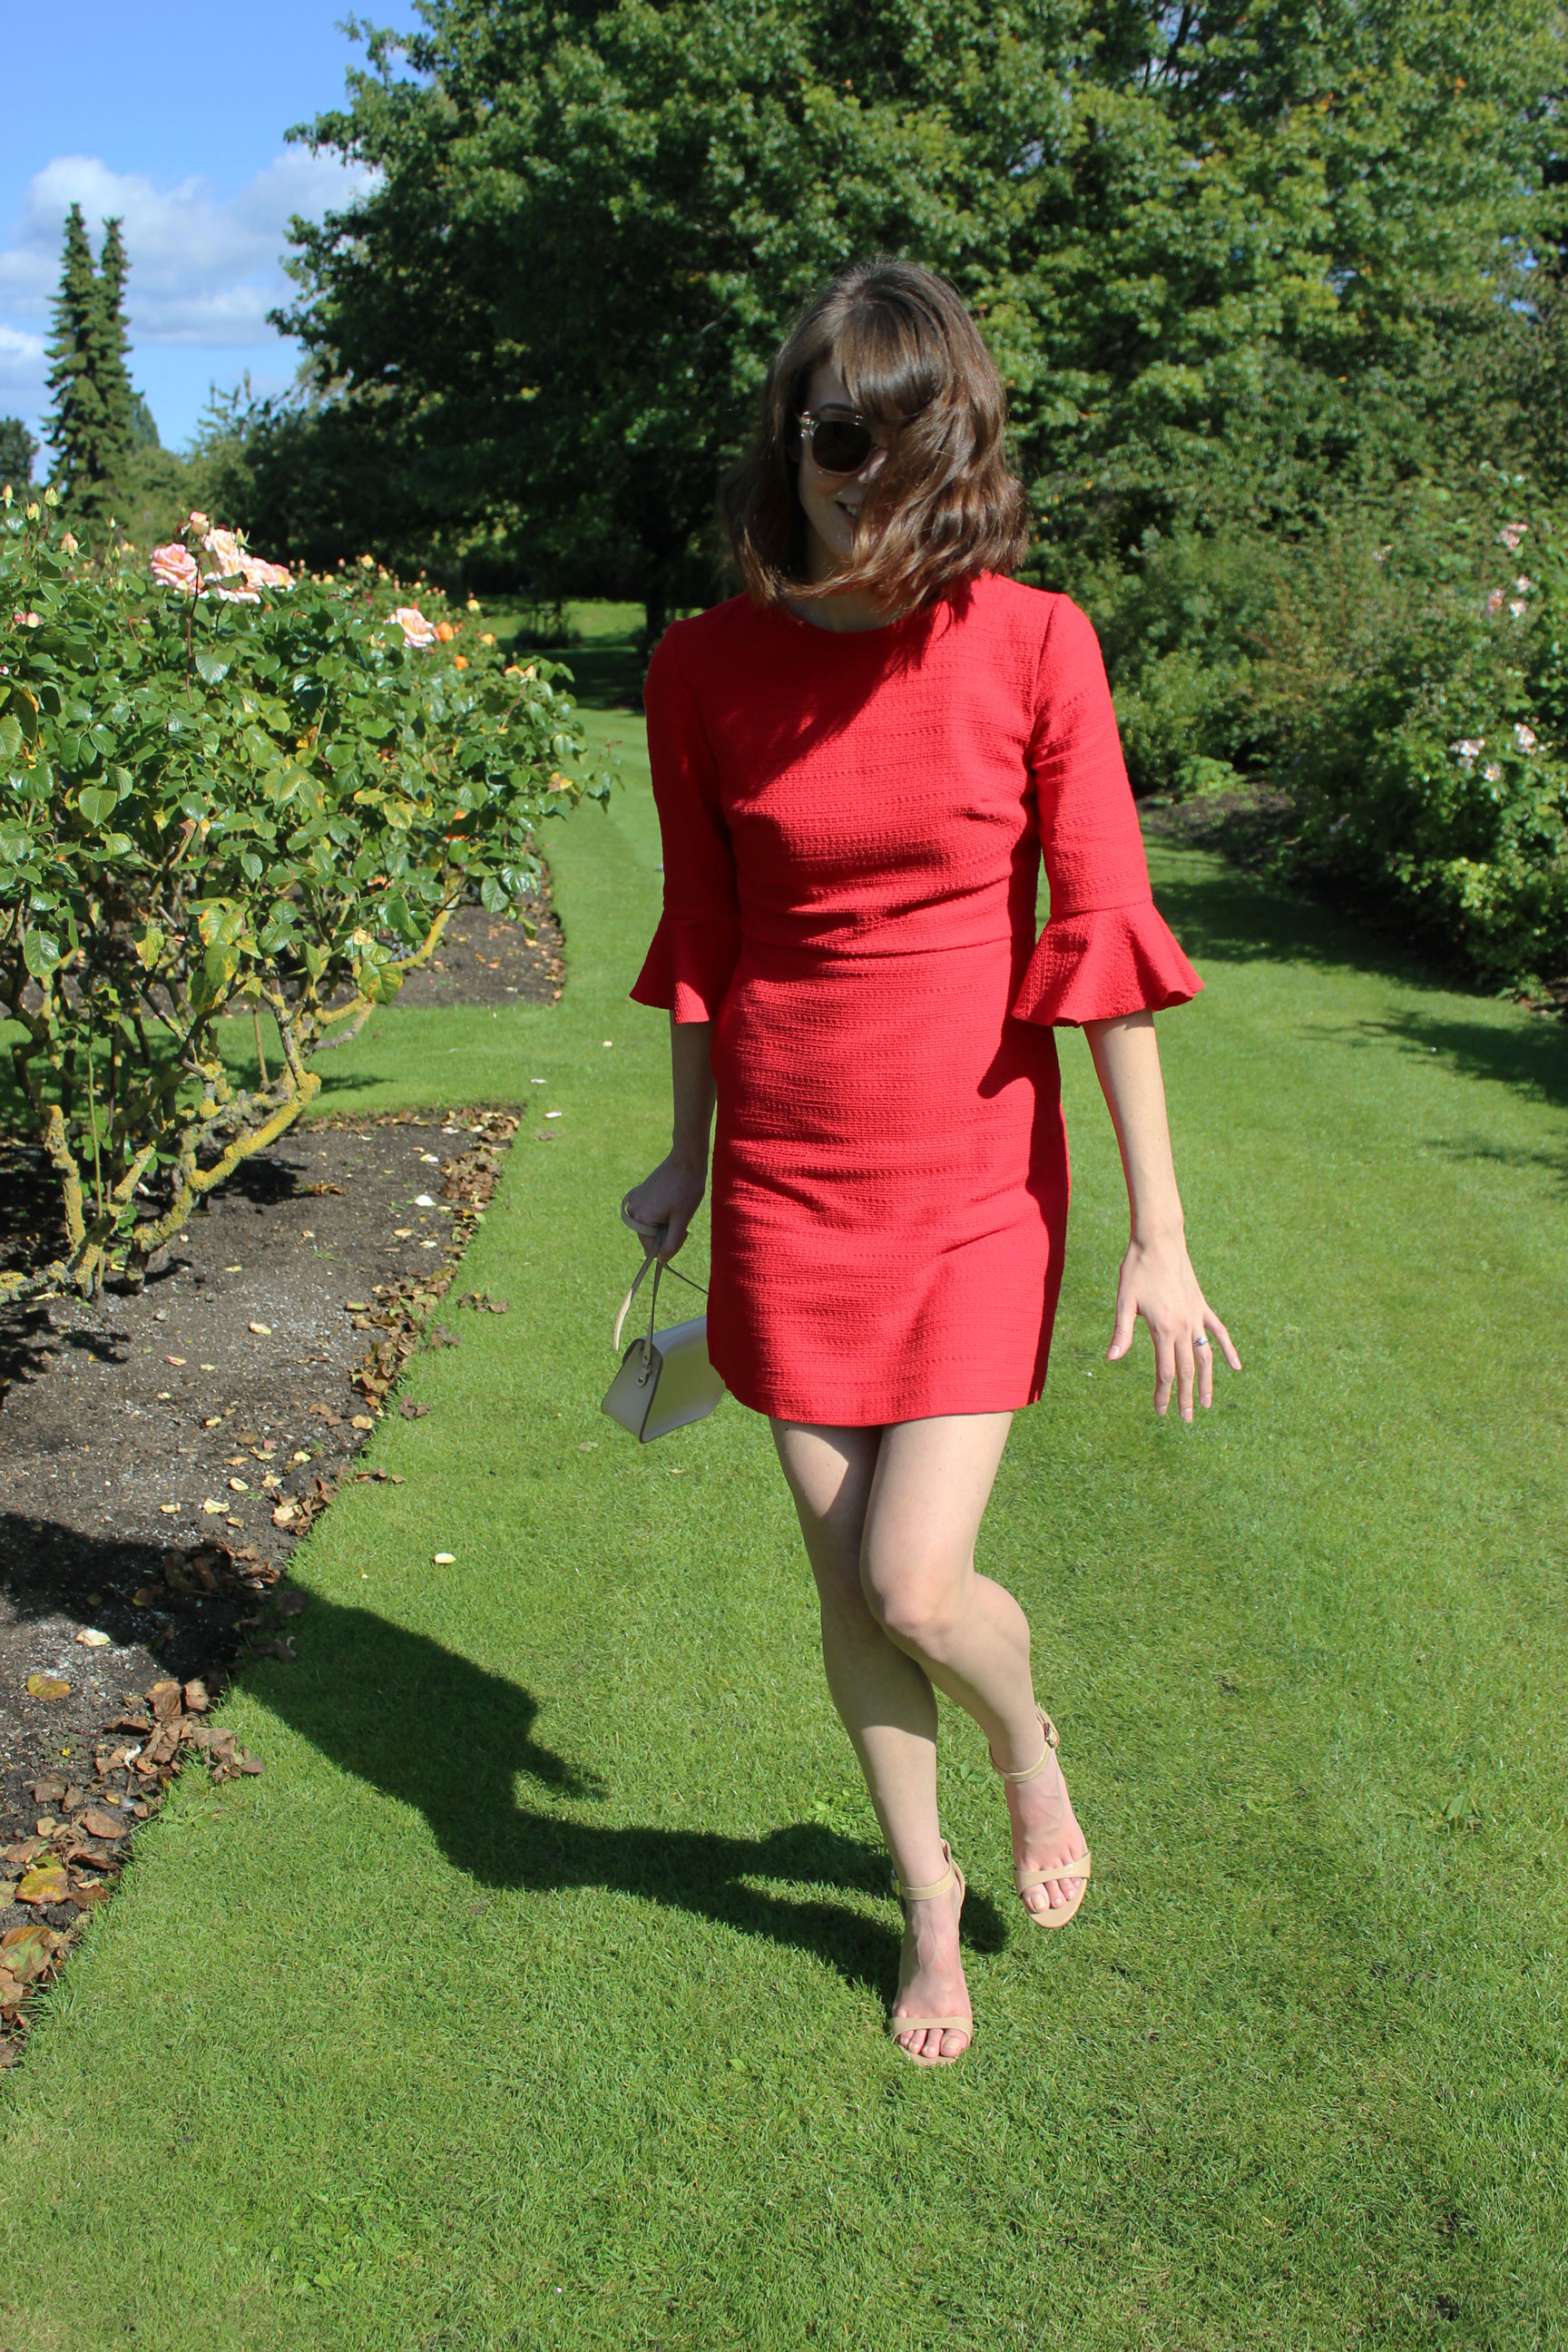 Red Topshop dress with tulip sleeves perfect for transitioning from summer to fall.